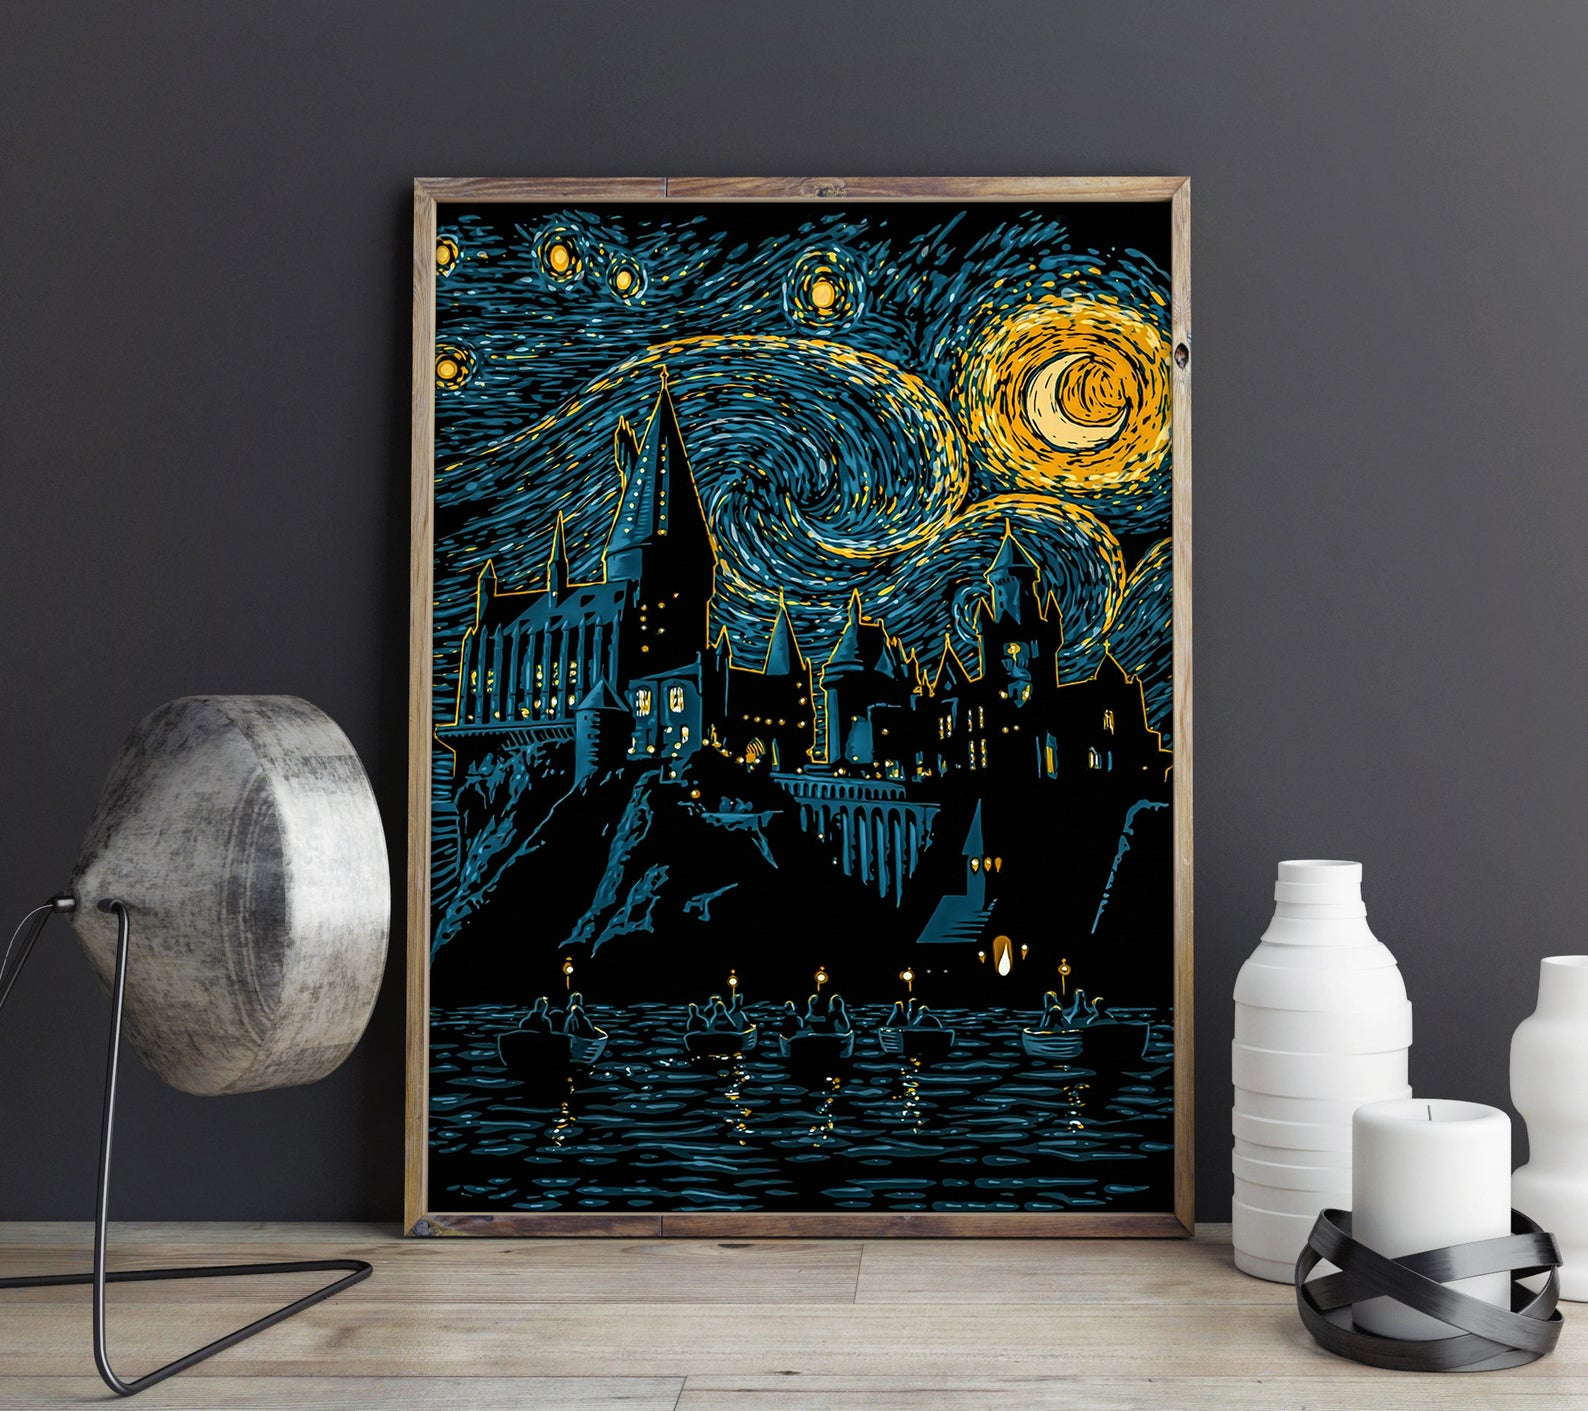 [Image description: a framed print of the Hogwarts Castle in the style of The Starry Night] via Etsy